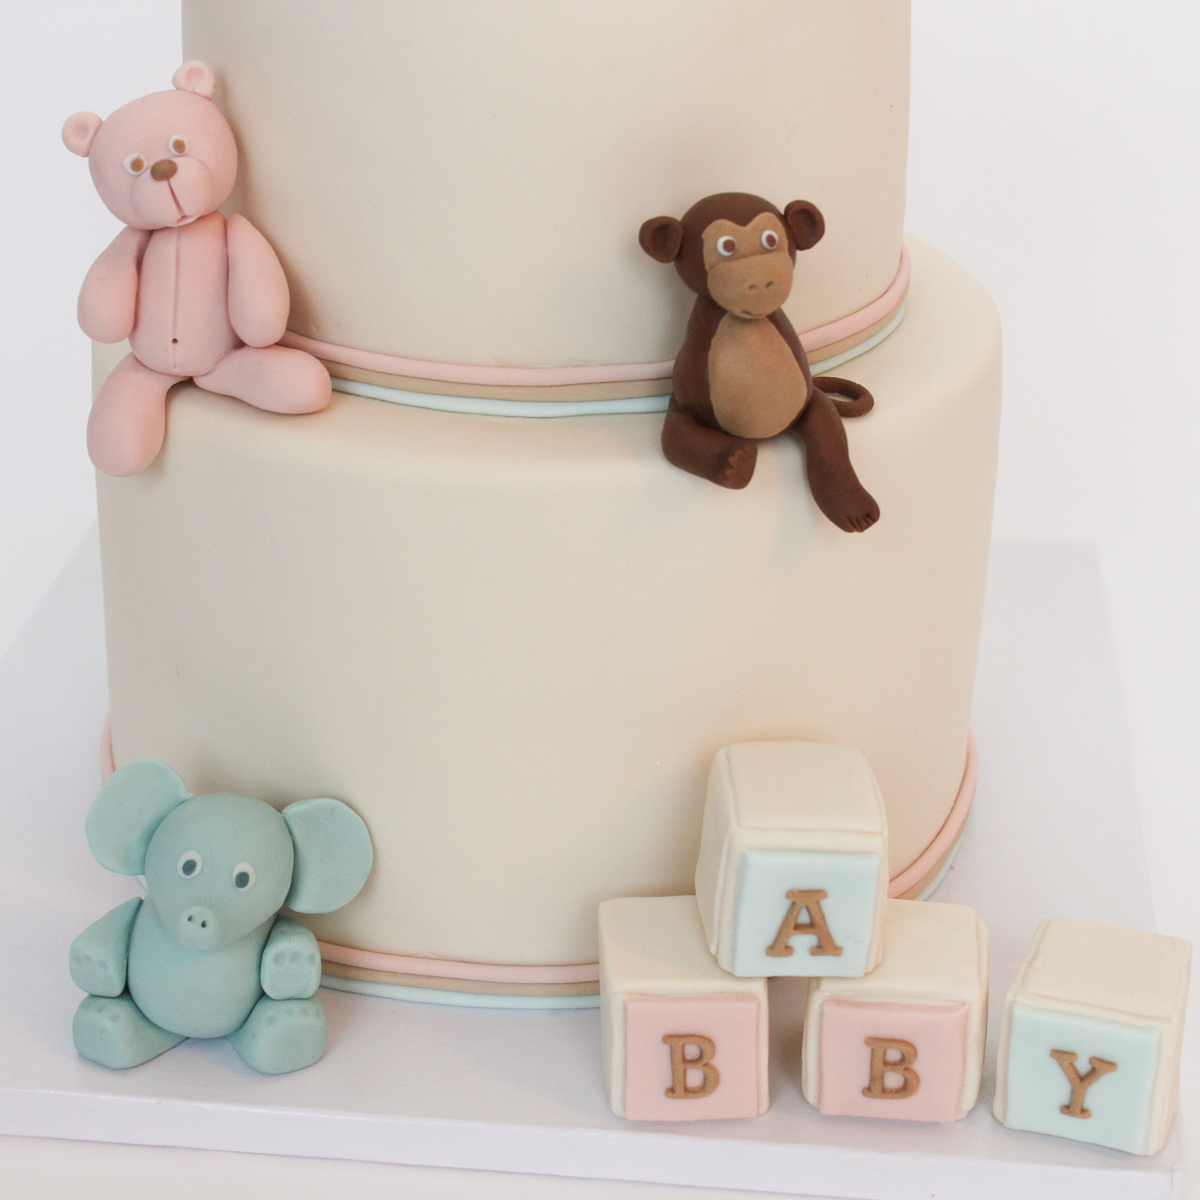 Baby shower gender reveal cake_001.jpg